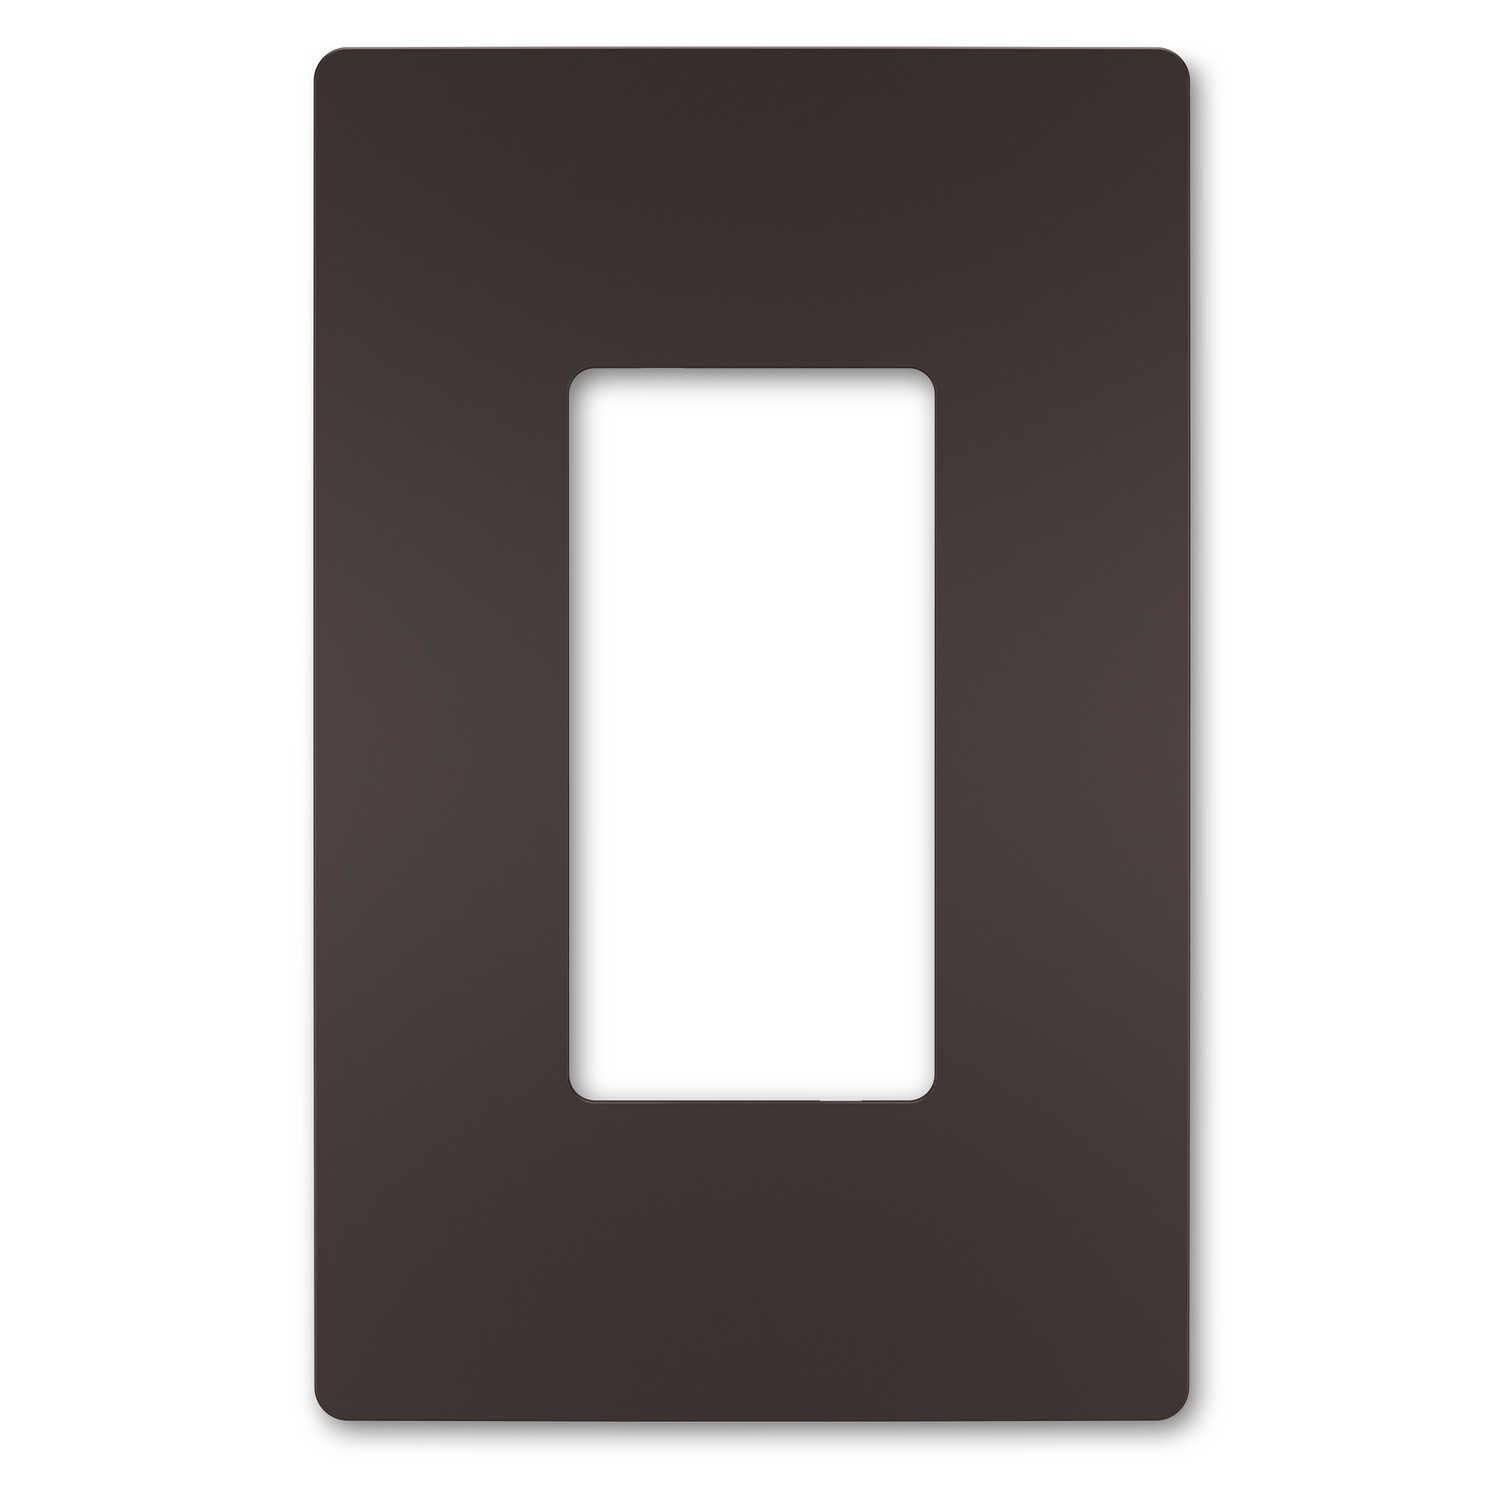 Legrand  Radiant  Bronze  1 gang Thermoplastic  GFCI/Rocker/Toggle  Wall Plate  1 pk